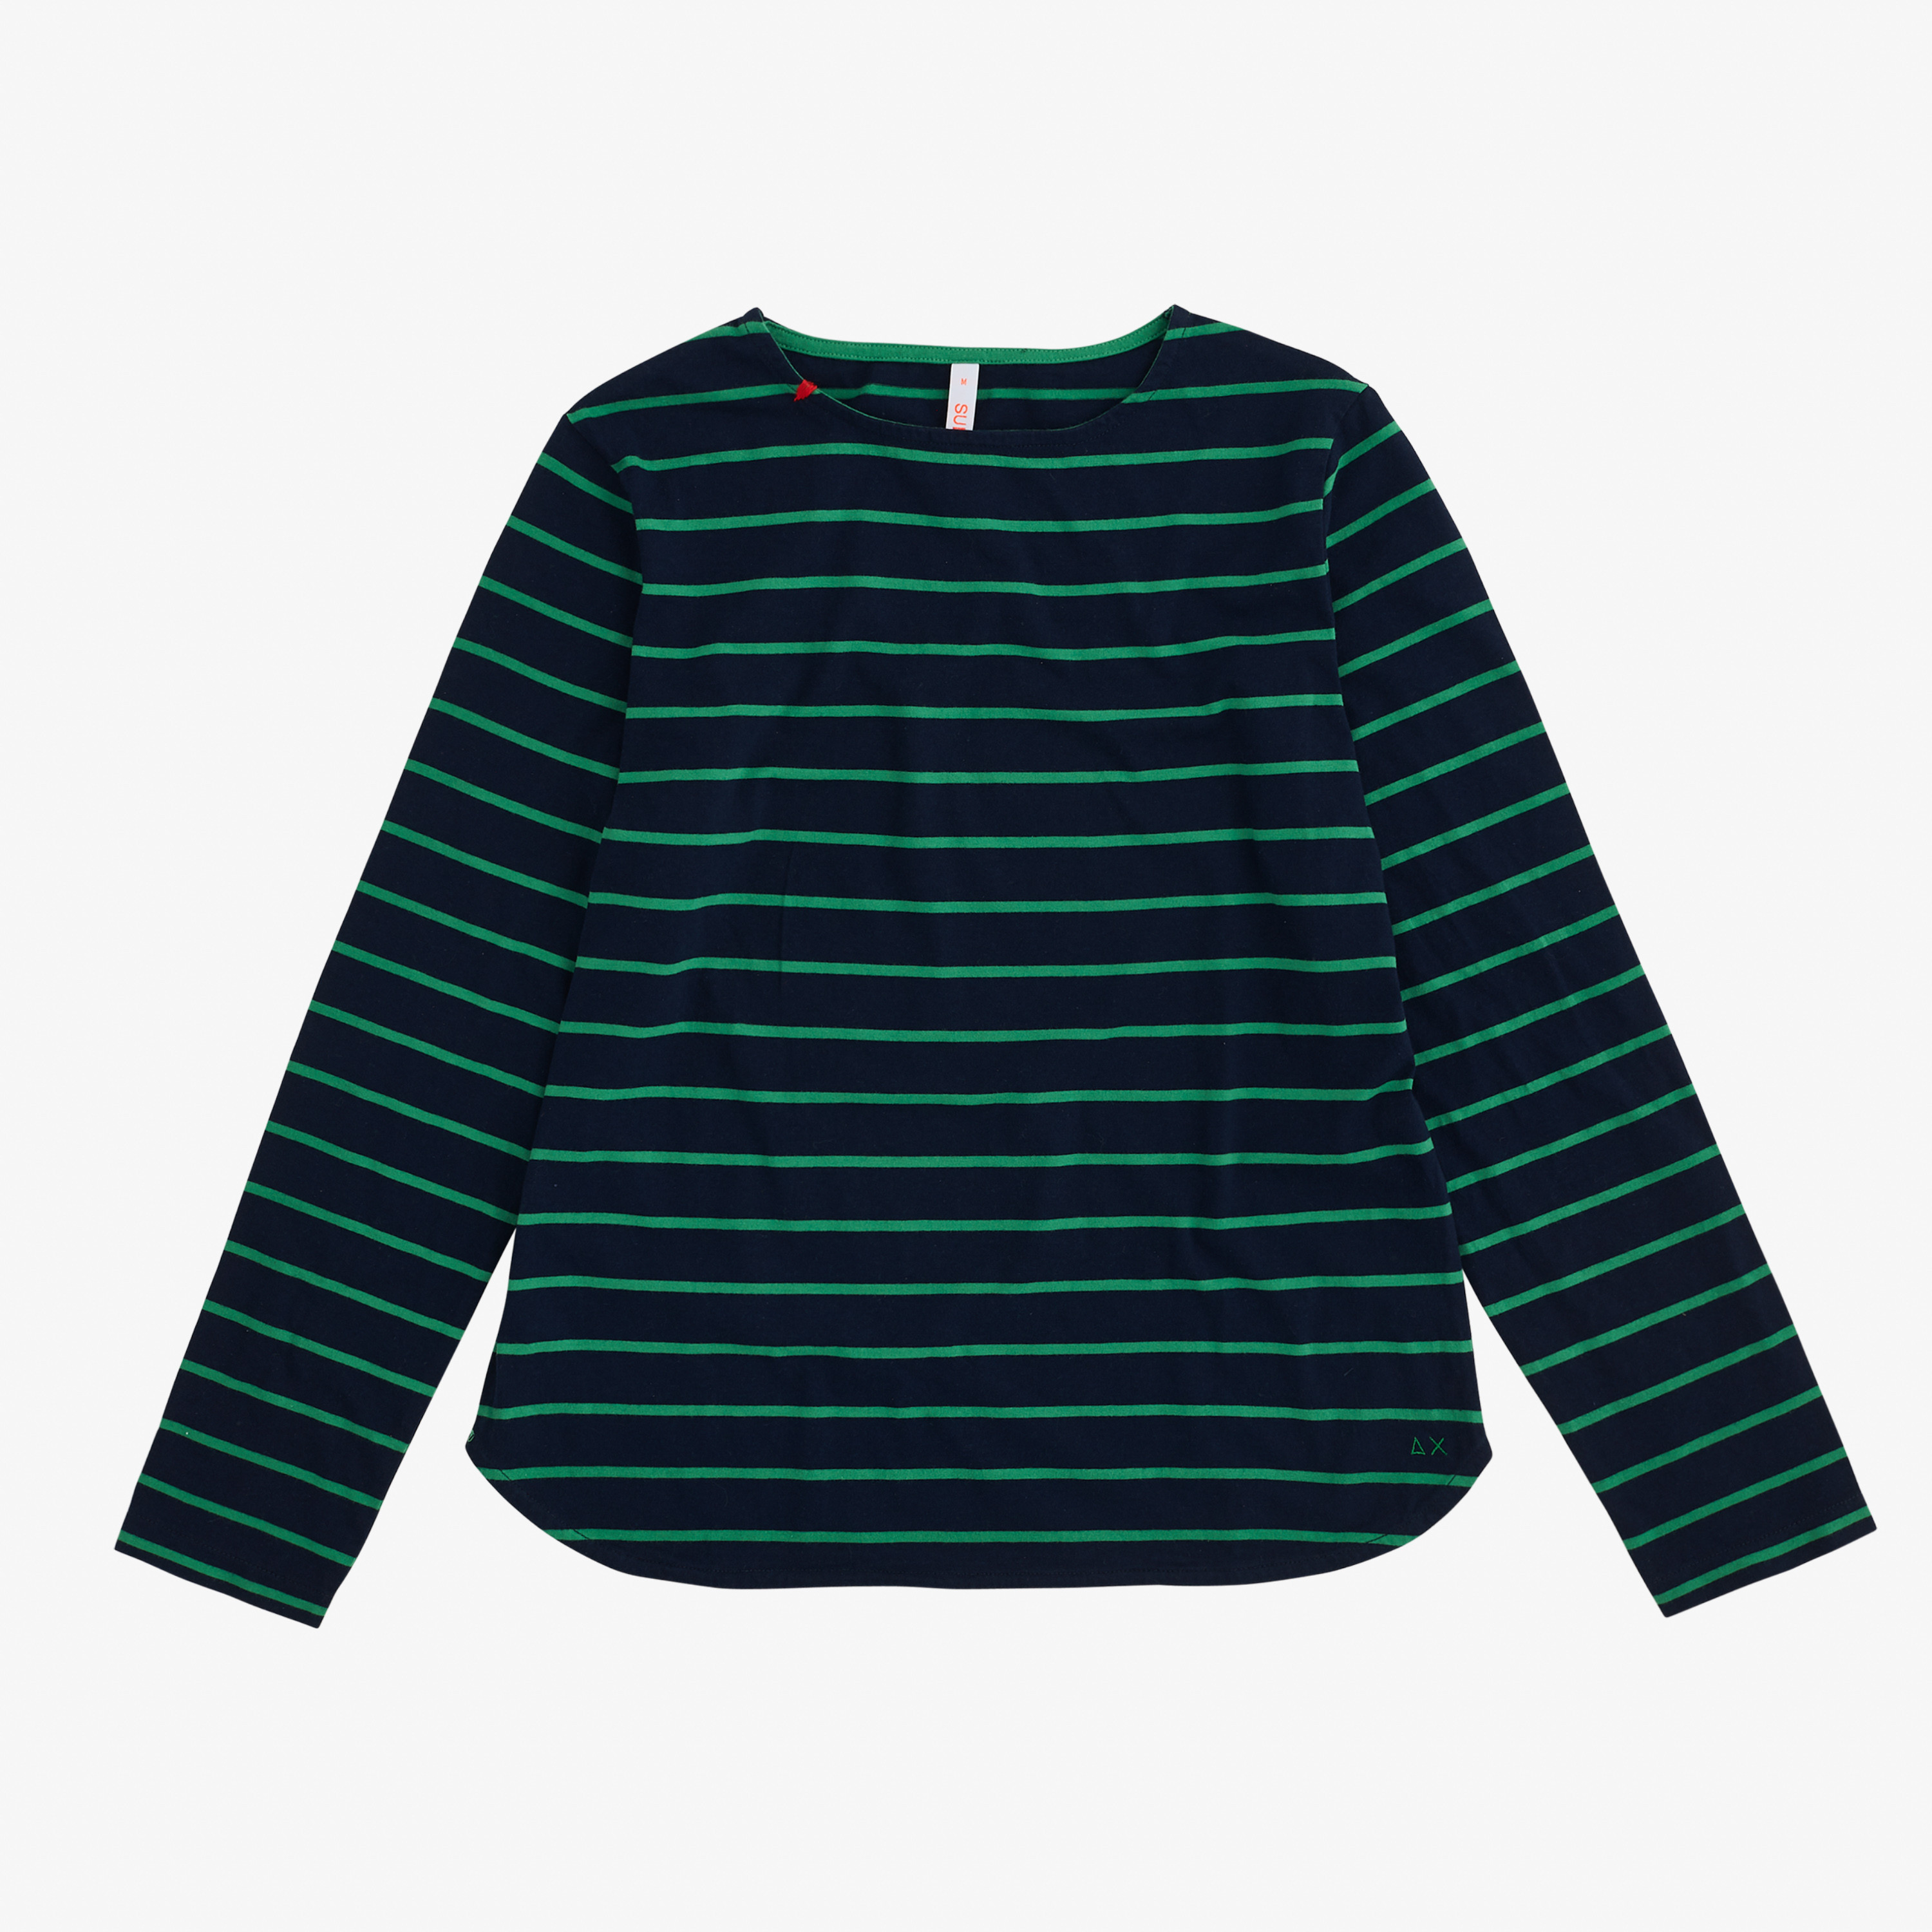 ROUND T-SHIRT STRIPES L/S NAVY BLUE/VERDE PRATO